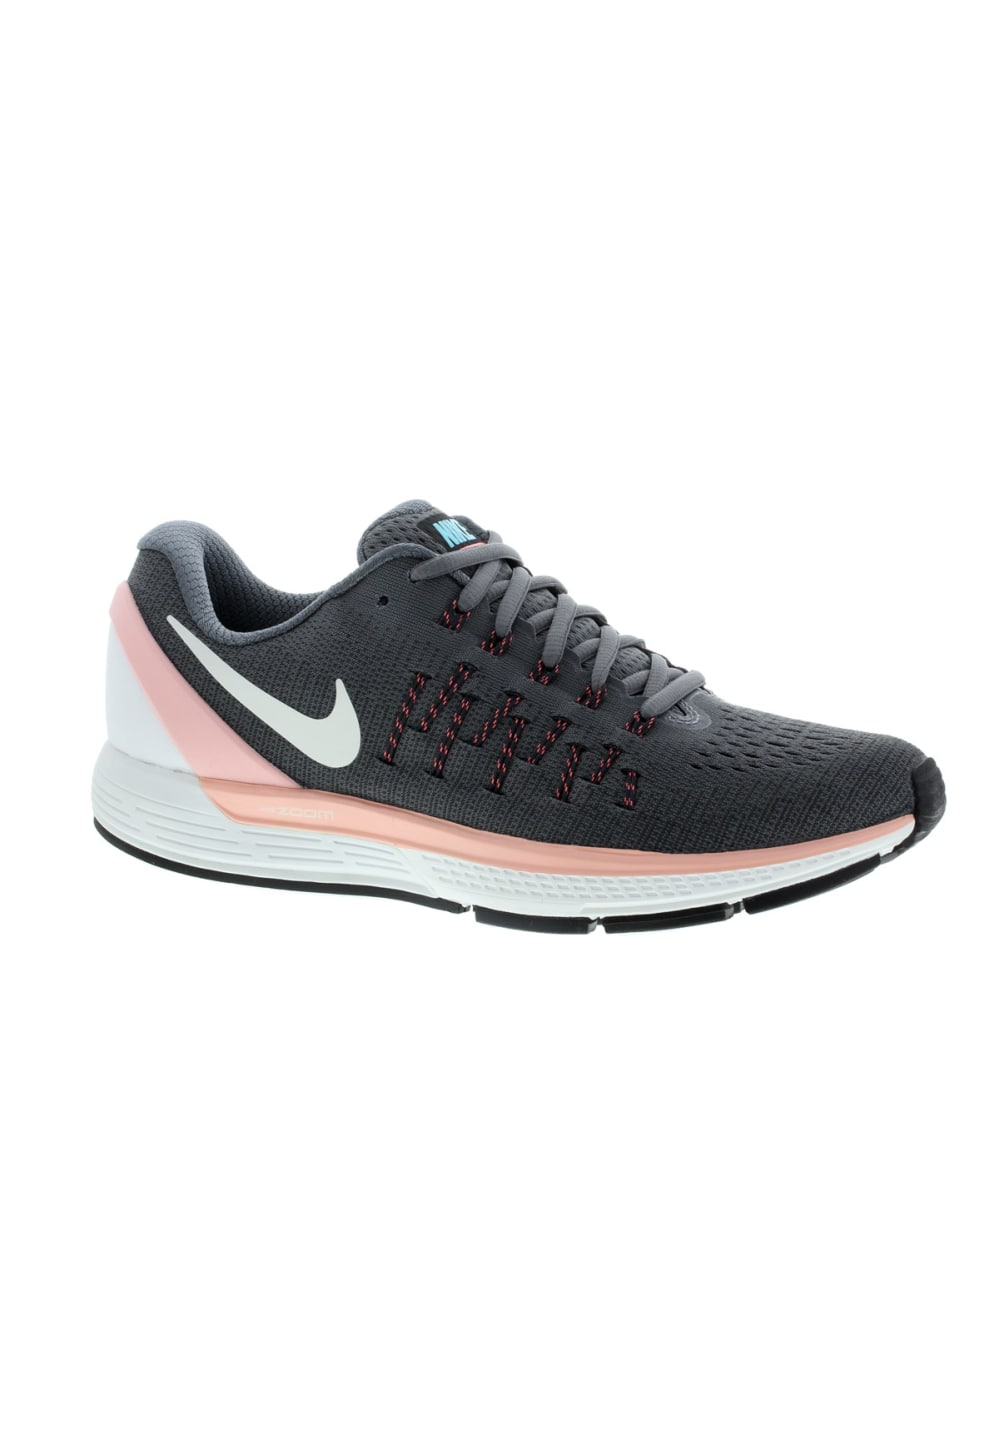 6ae76dfd8f9 Next. -45%. This product is currently out of stock. Nike. Air Zoom Odyssey 2  - Running shoes for Women